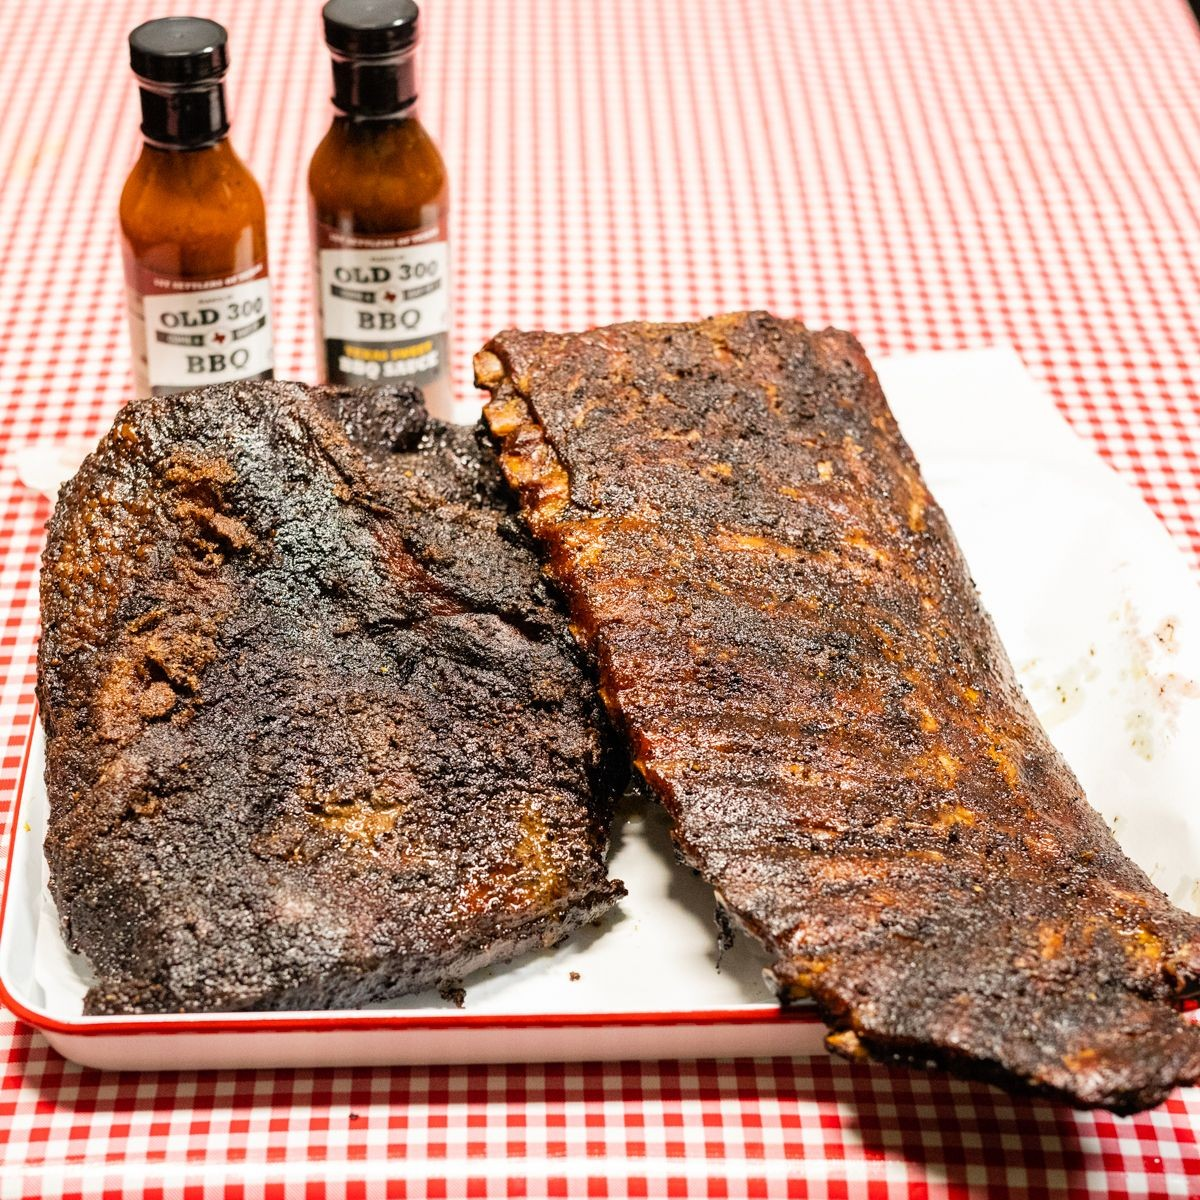 angus-brisket-and-ribs.6187bad027043612e80984d2b8b05205